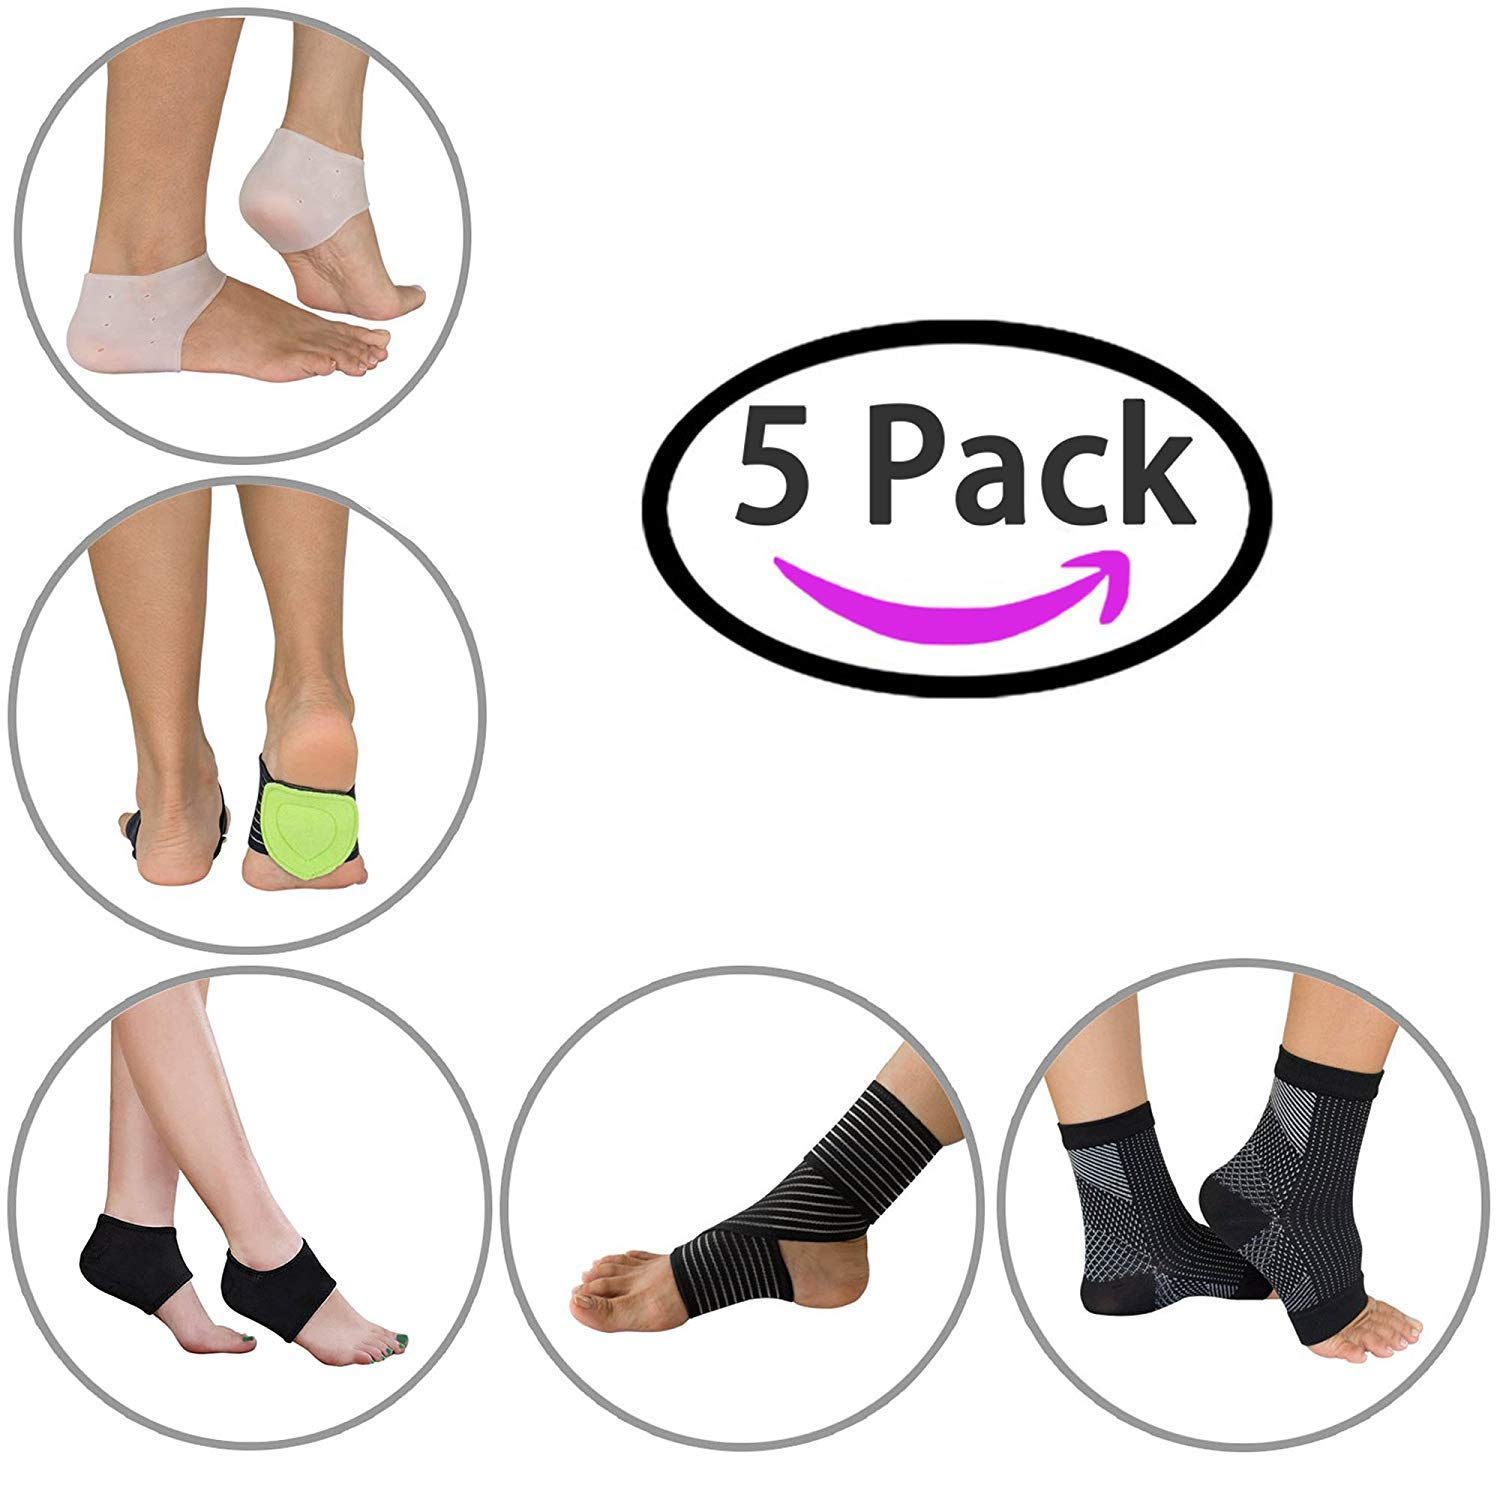 Plantar Fasciitis Foot Sleeve Kit - Plantar Fasciitis Silicone Heel Protectors, Heel Recovery Protectors, Arch Support Pads, Compression Socks, Ankle Brace (5 Pack)